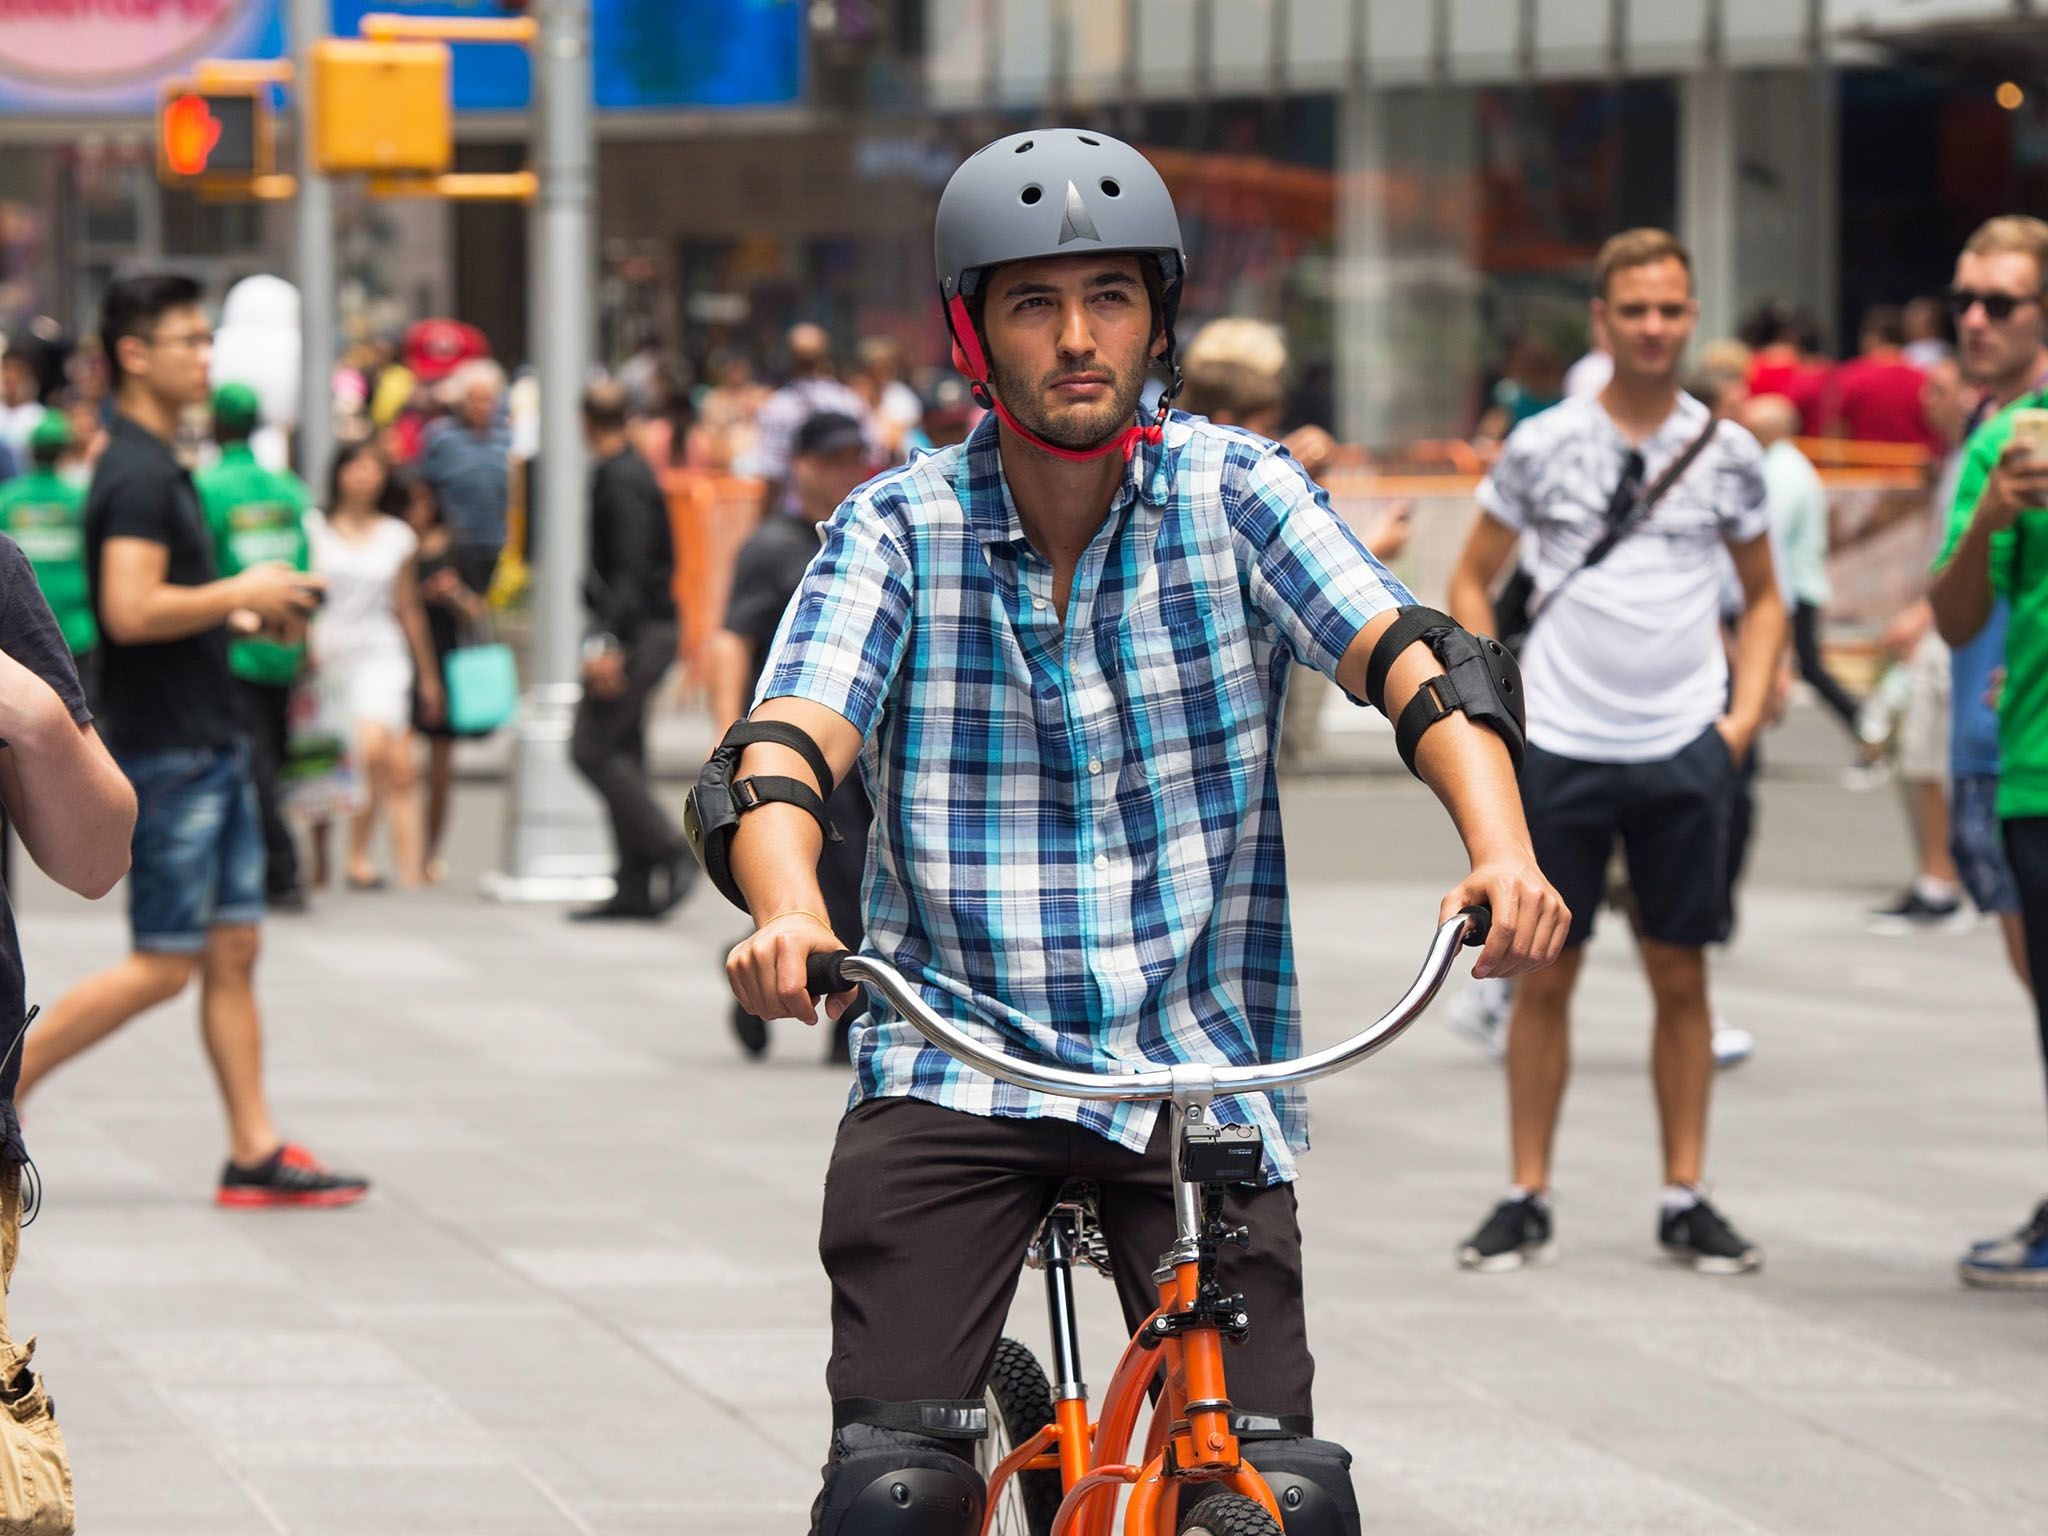 New York City, N.Y.: Jason Silva preparing to ride the Backwards Bike in front of a crowd in... [Photo of the day - February 2016]